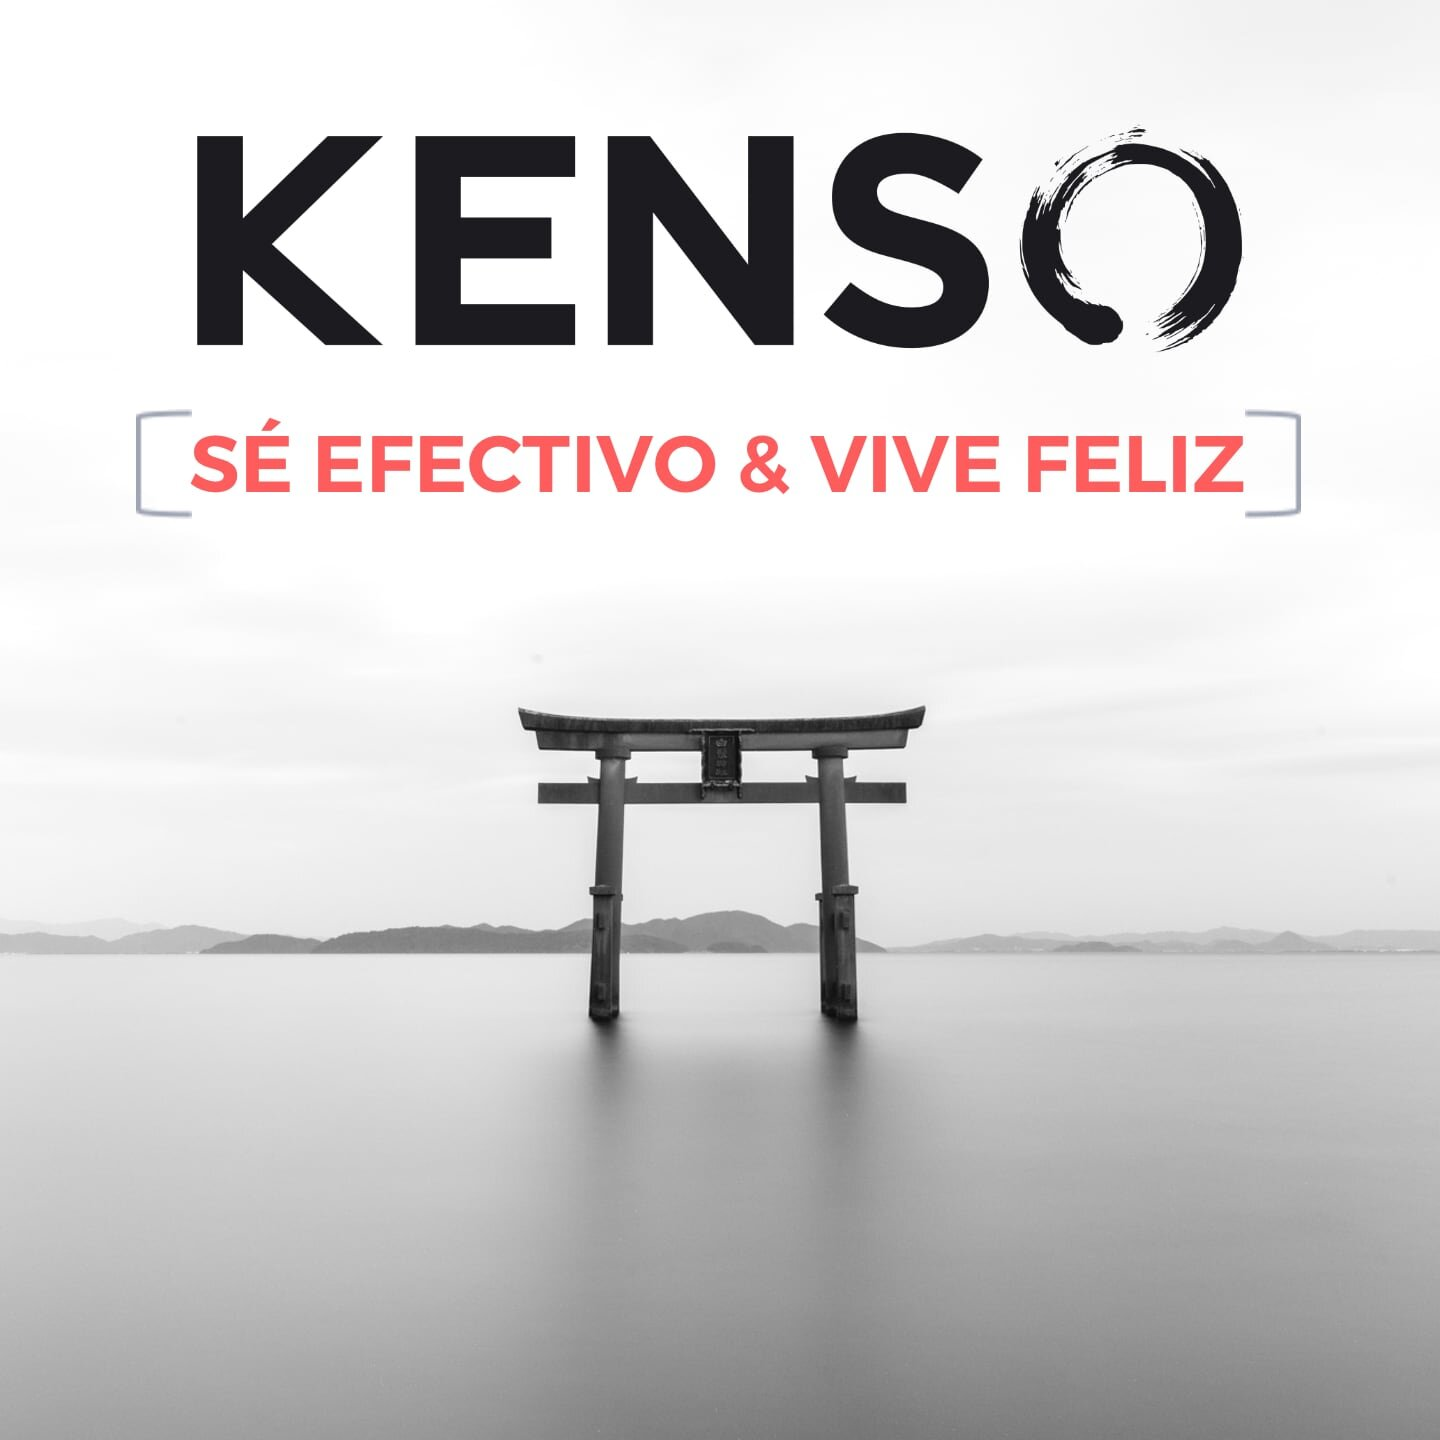 KENSO